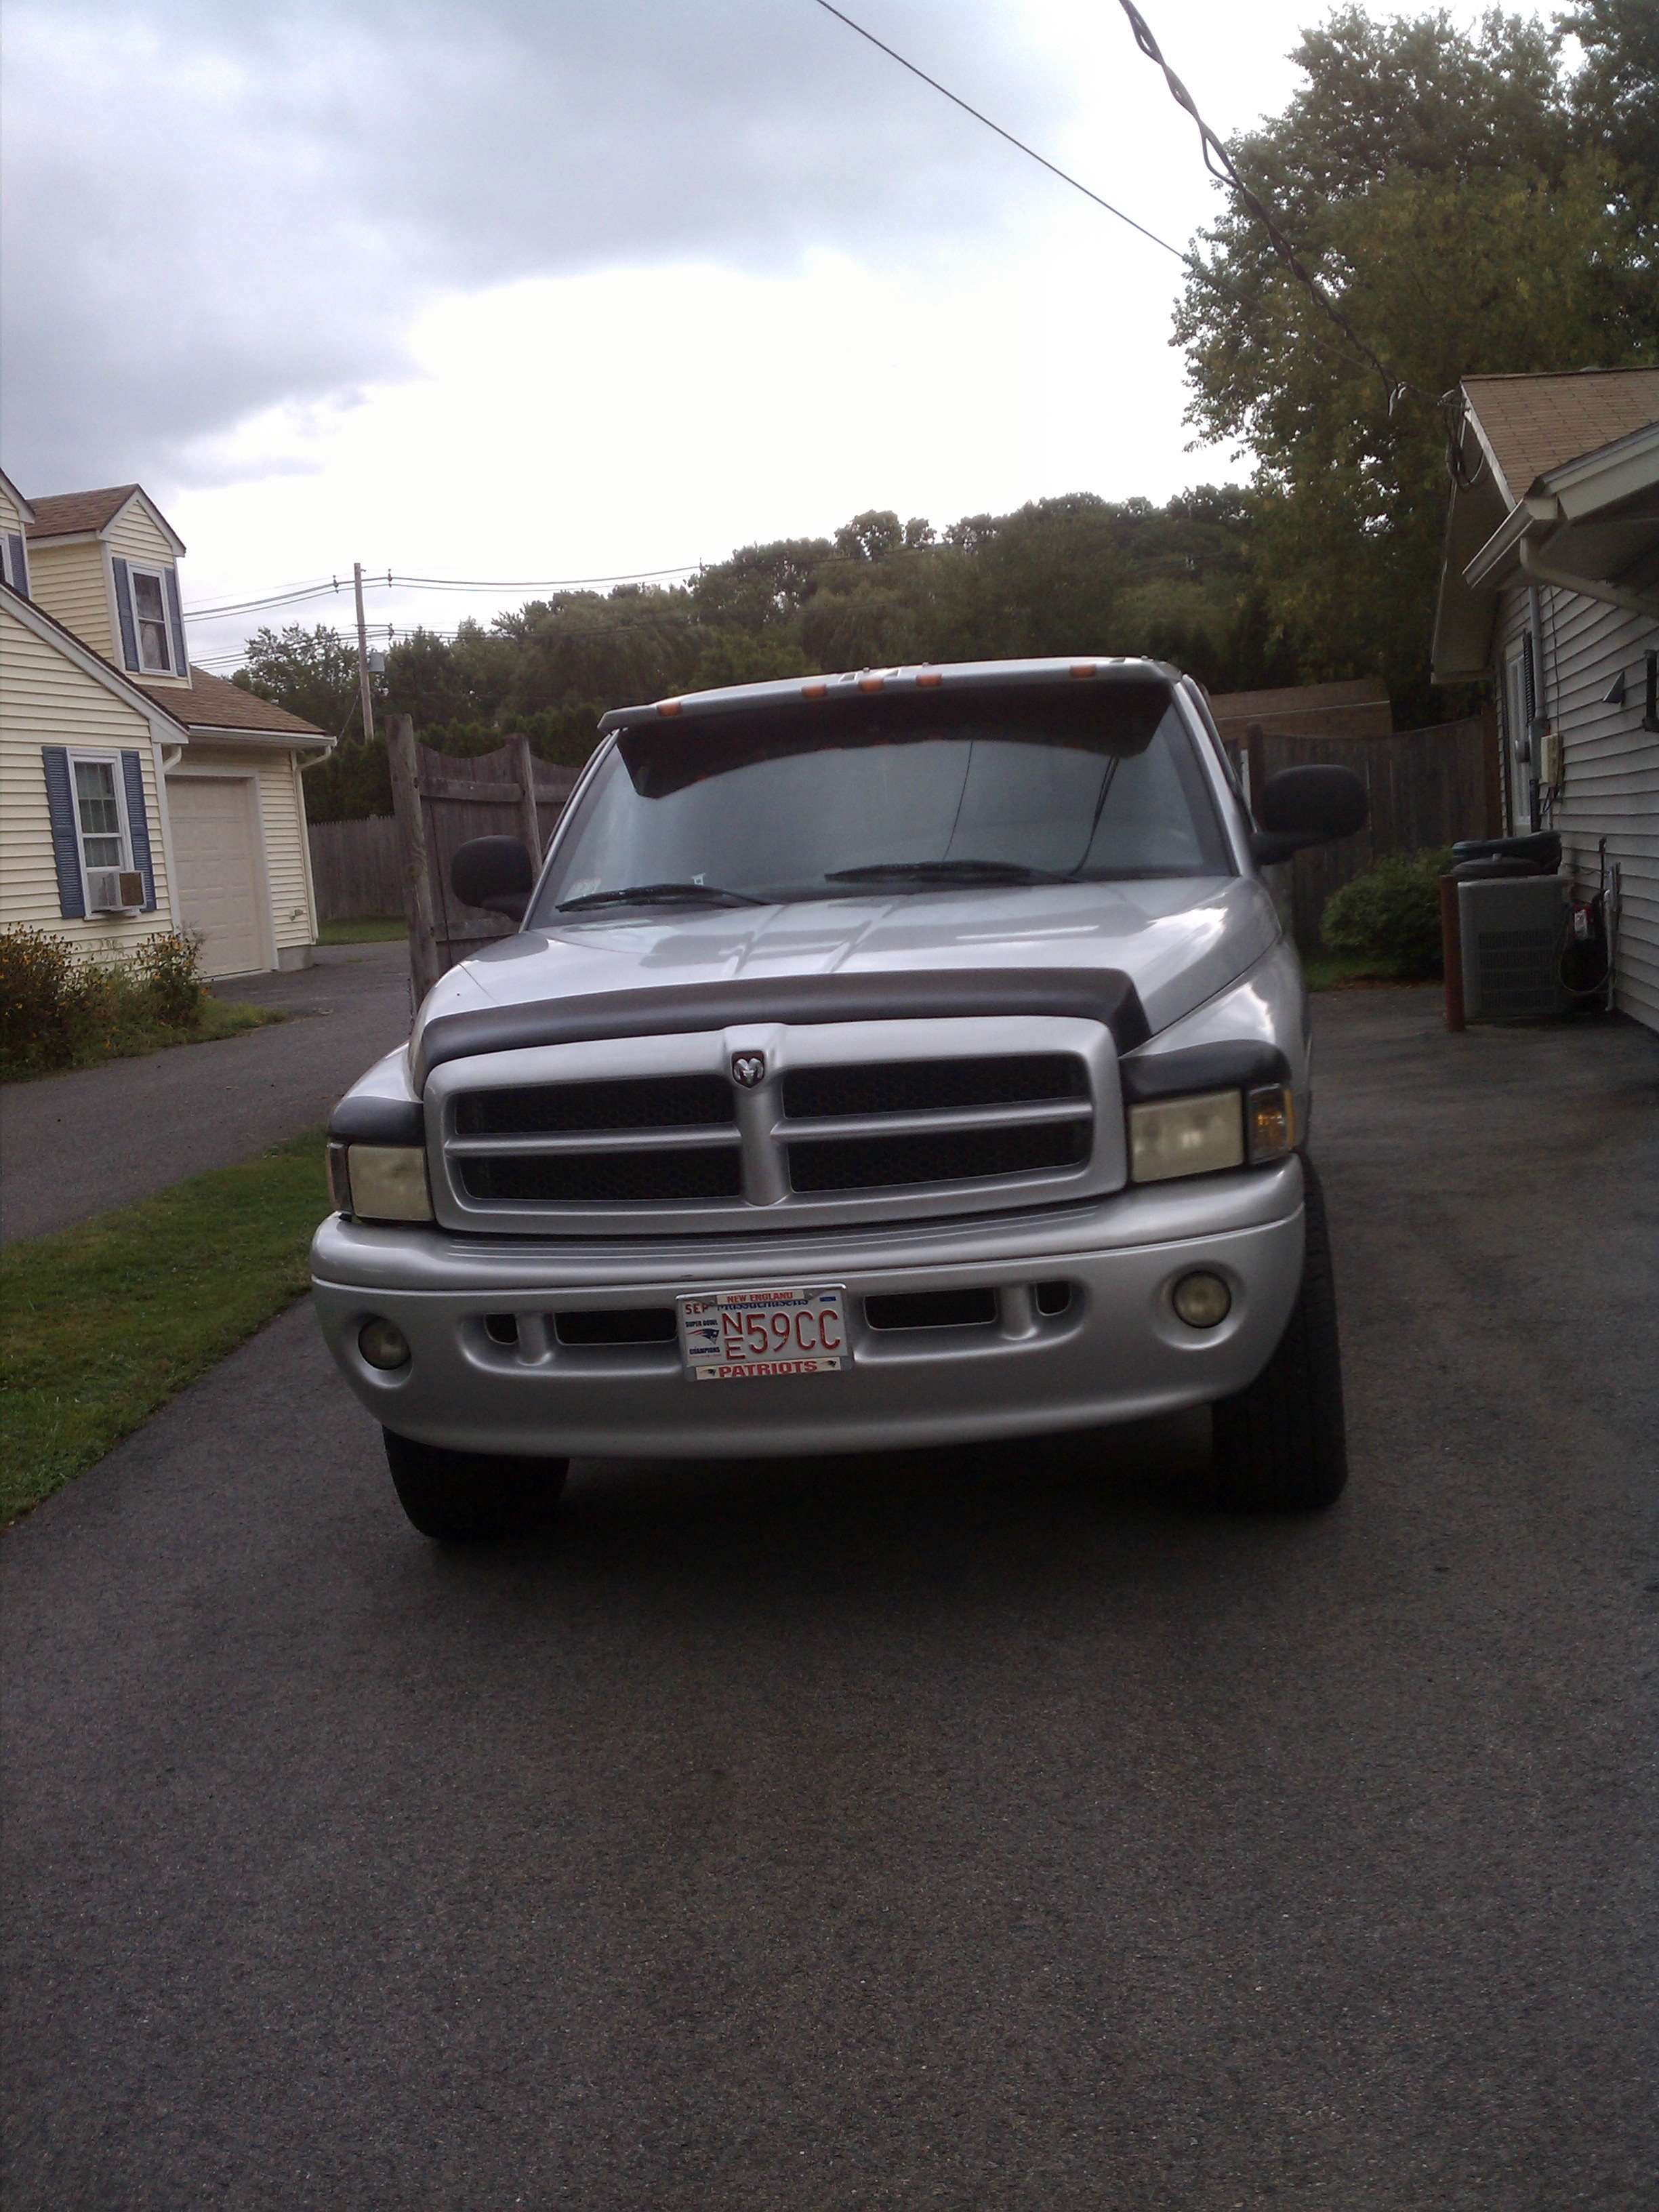 Make dodge model ram 1500 truck year 2001 body style extended cab pickup exterior color silver interior color gray doors four door vehicle condition